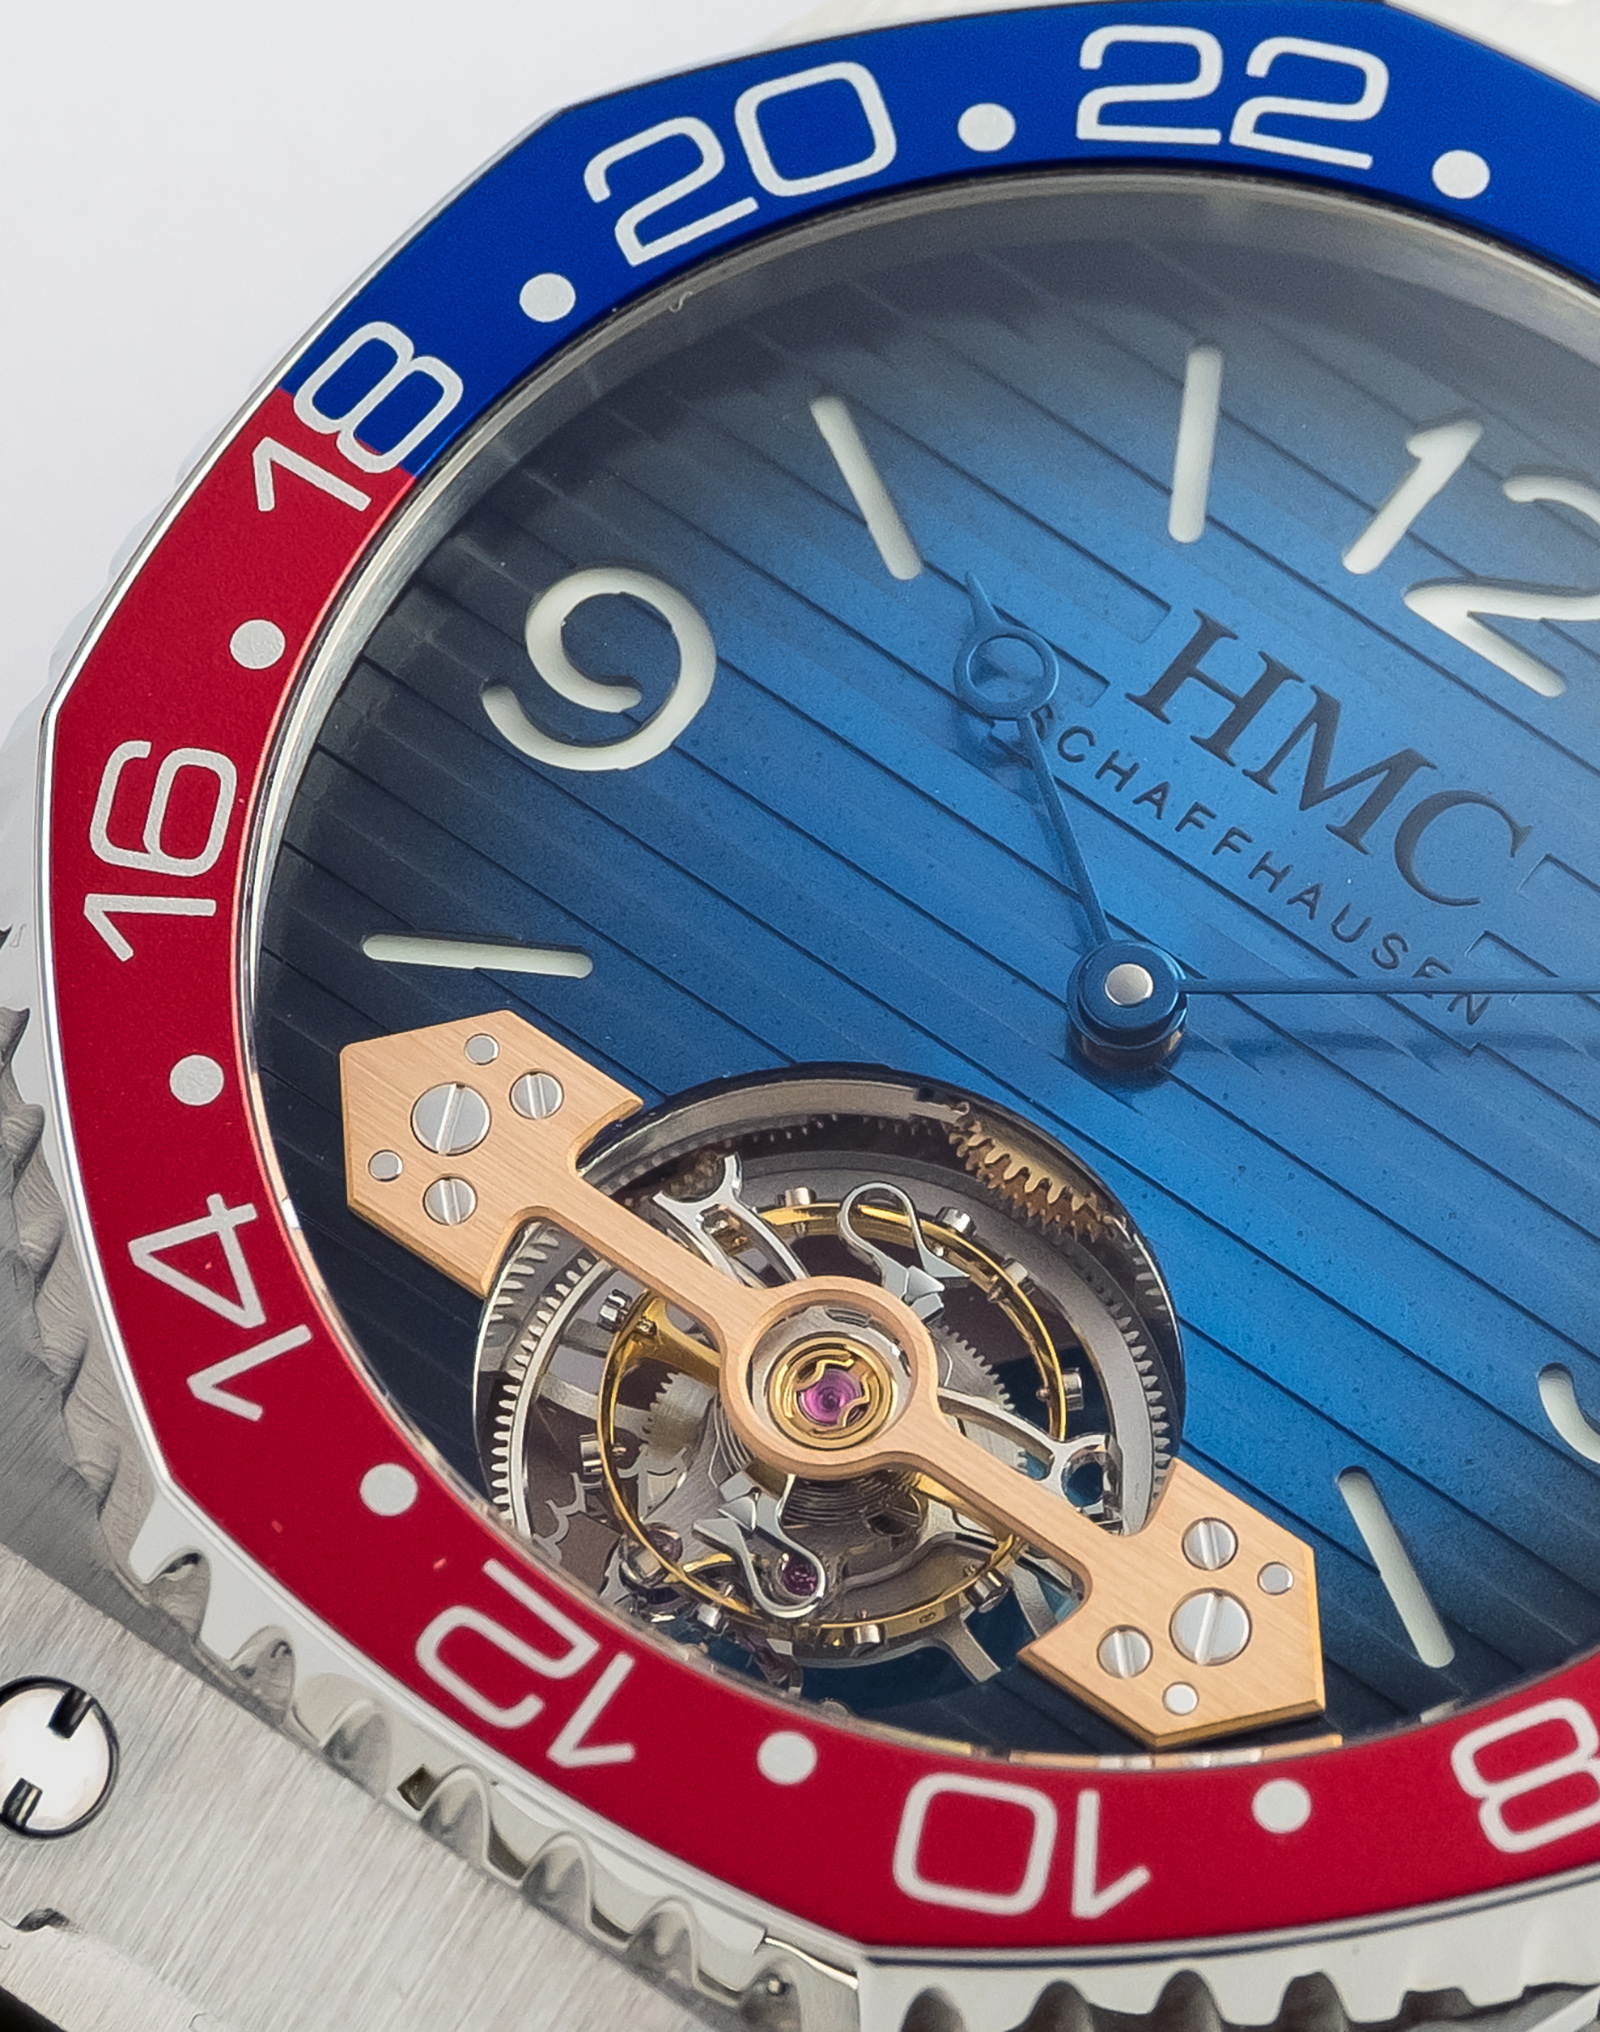 H.Moser & Cie Swiss Icons Watch_3804-1200_Lifestyle_1